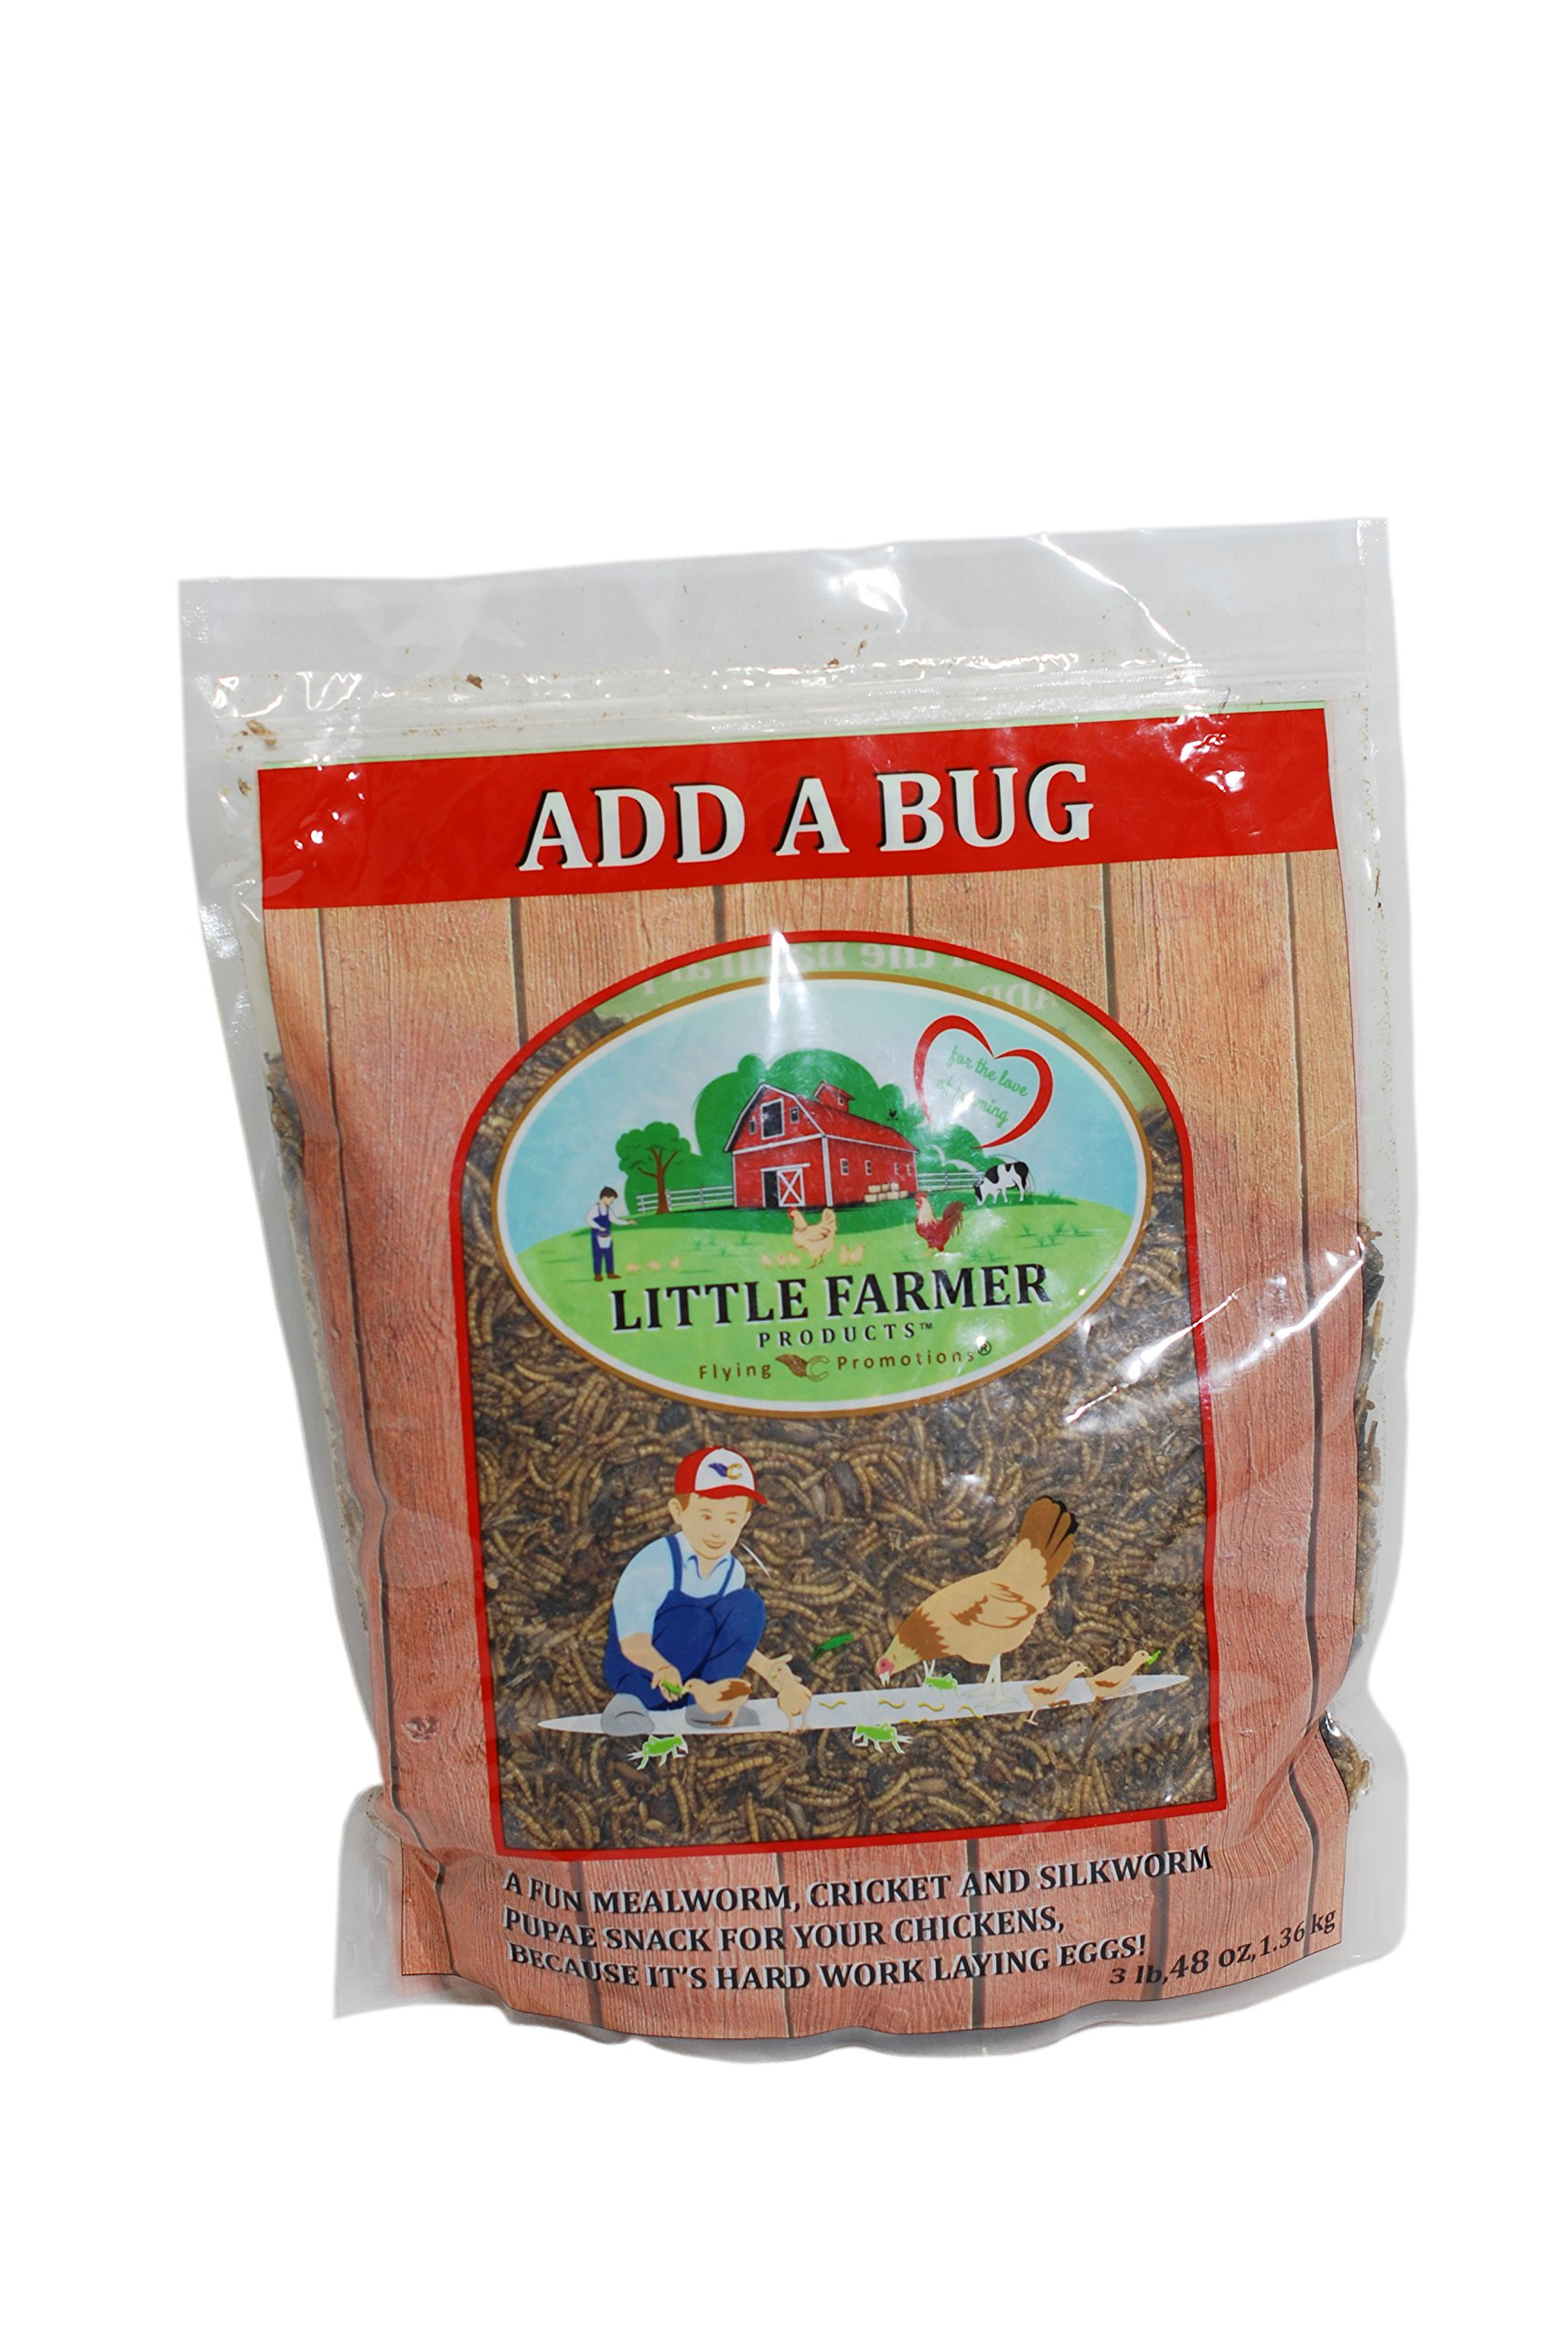 Little Farmer Products Add A Bug - Premium Poultry Mix Dried Mealworms, Silkworm Pupae And Crickets | 3 Lb by LITTLE FARMER PRODUCTS